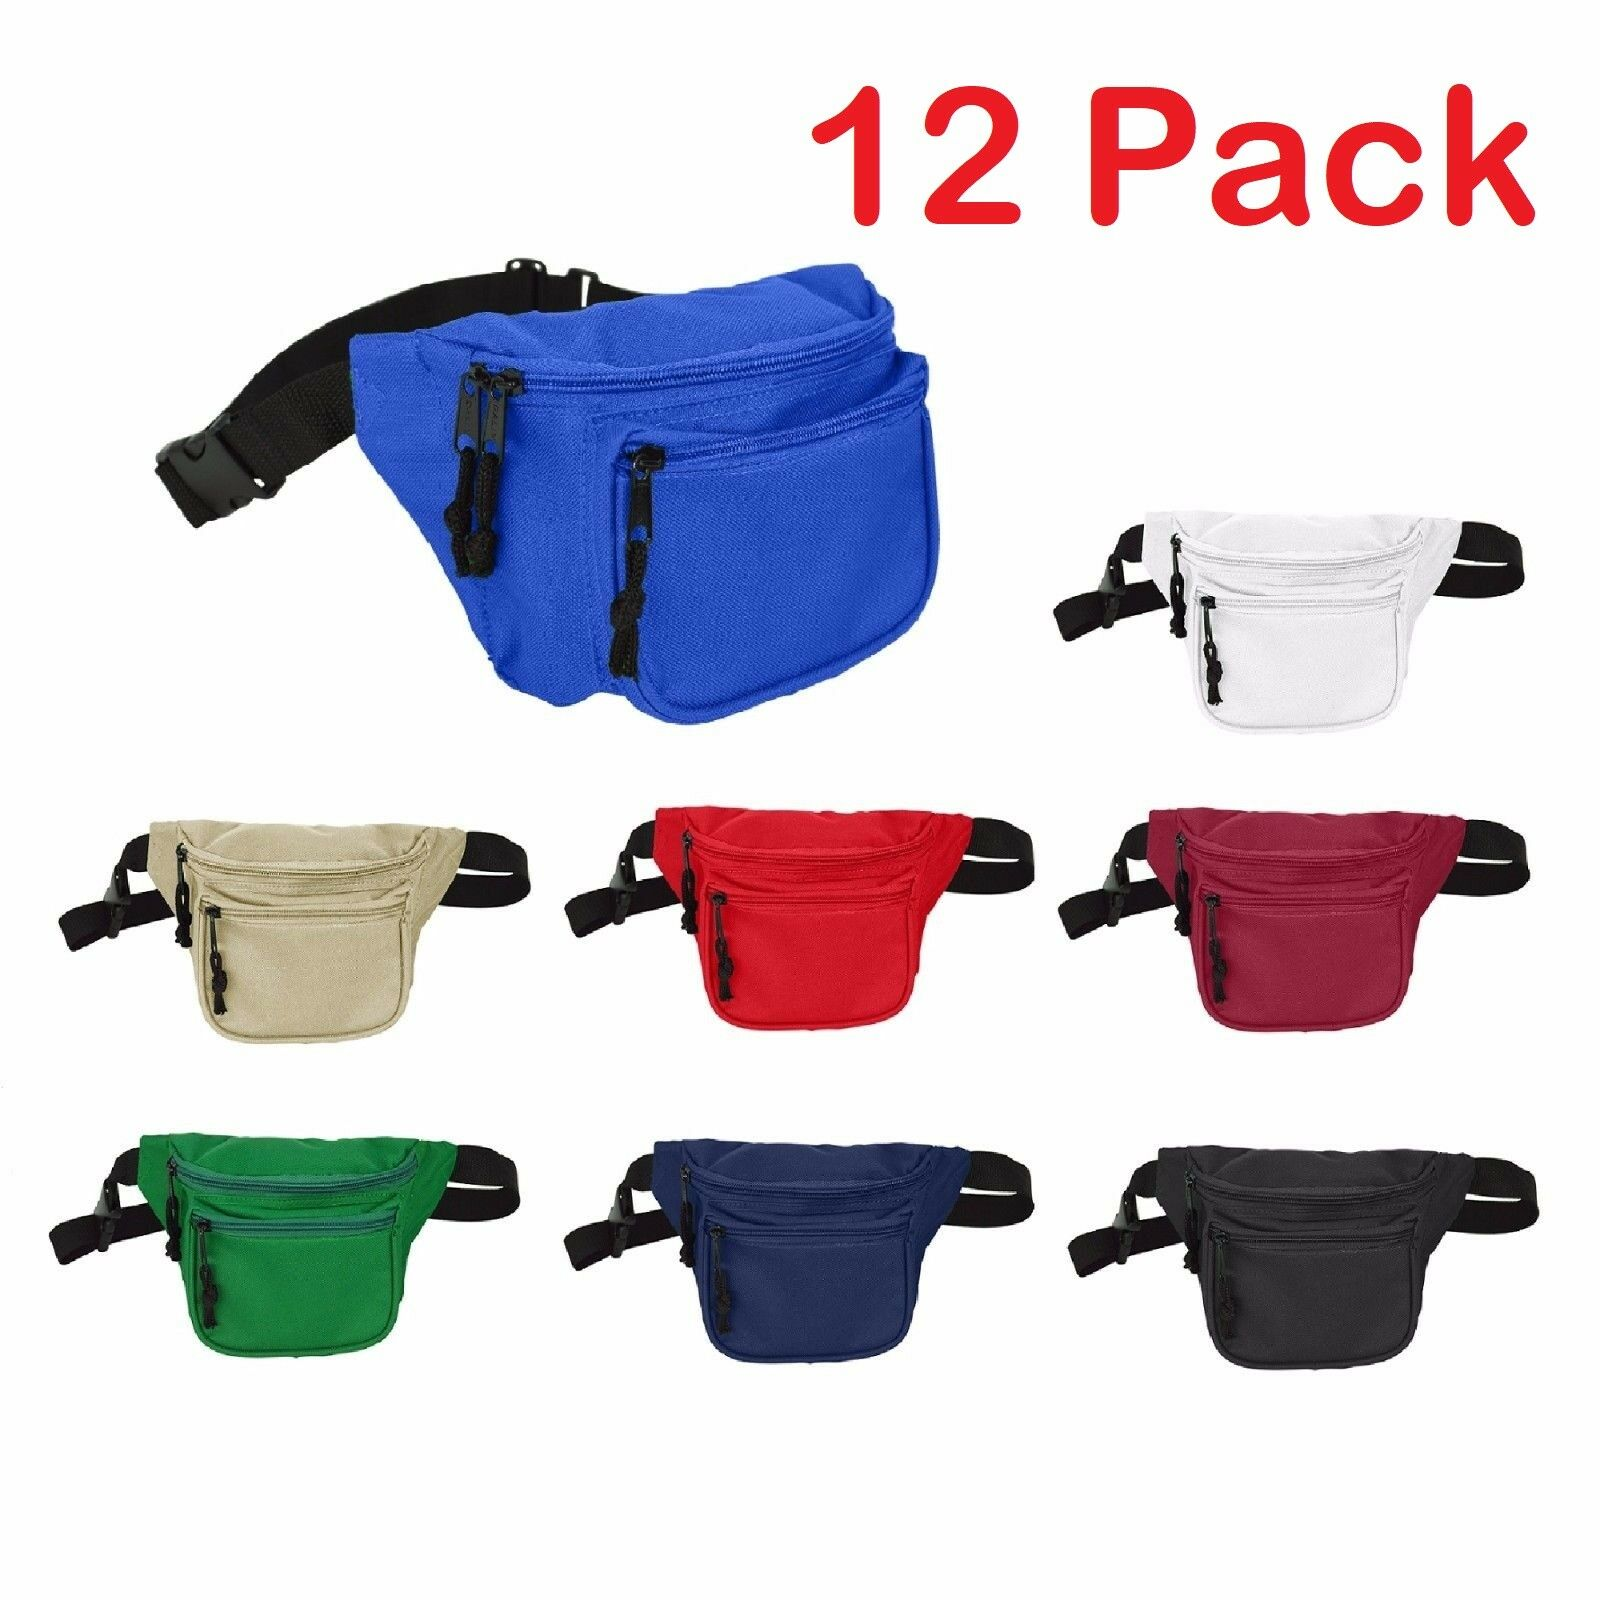 DALIX Waist Bag Fanny Pack with 3 Pockets Travel Waist Pouch Adjustable 12 PACK Camping & Hiking